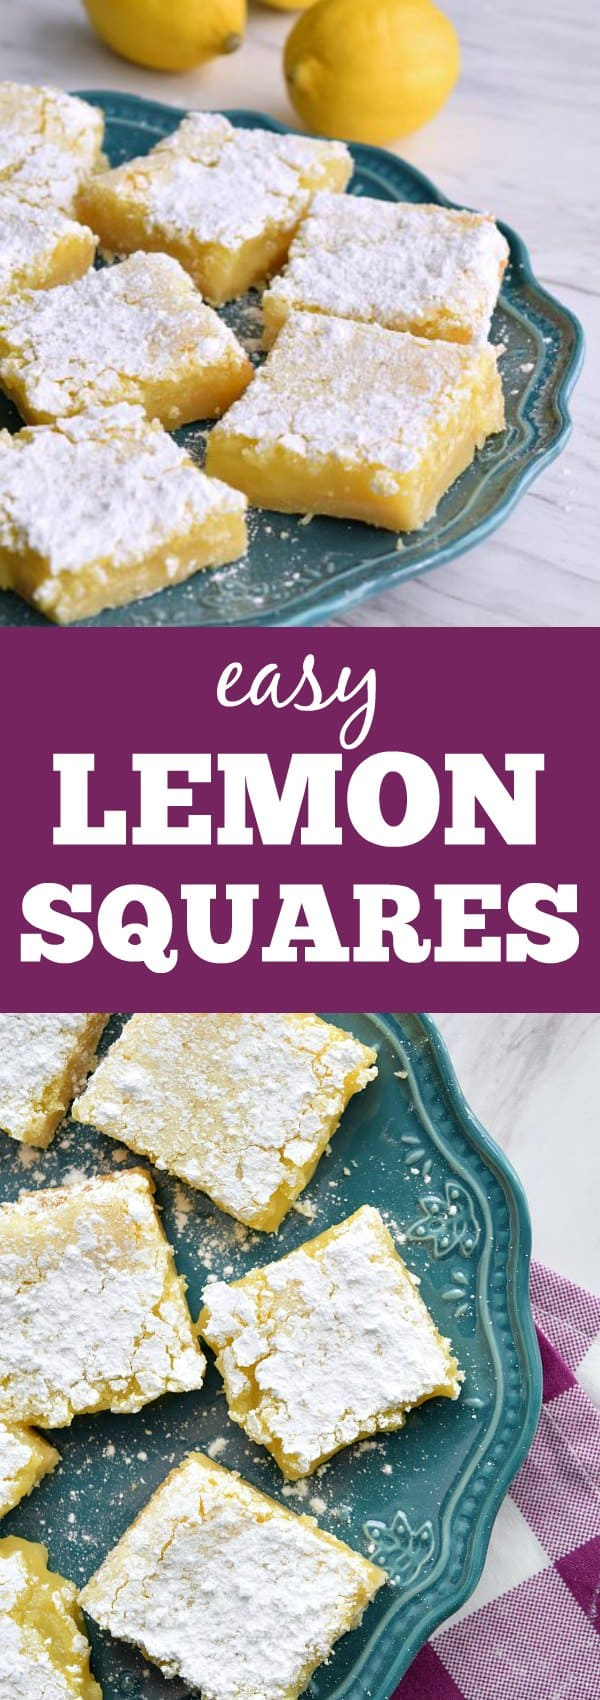 These homemade lemon squares are oozing with gooey lemon filling overtop a simple buttery crust. These are the lemon bars people will be asking you to make again and again.